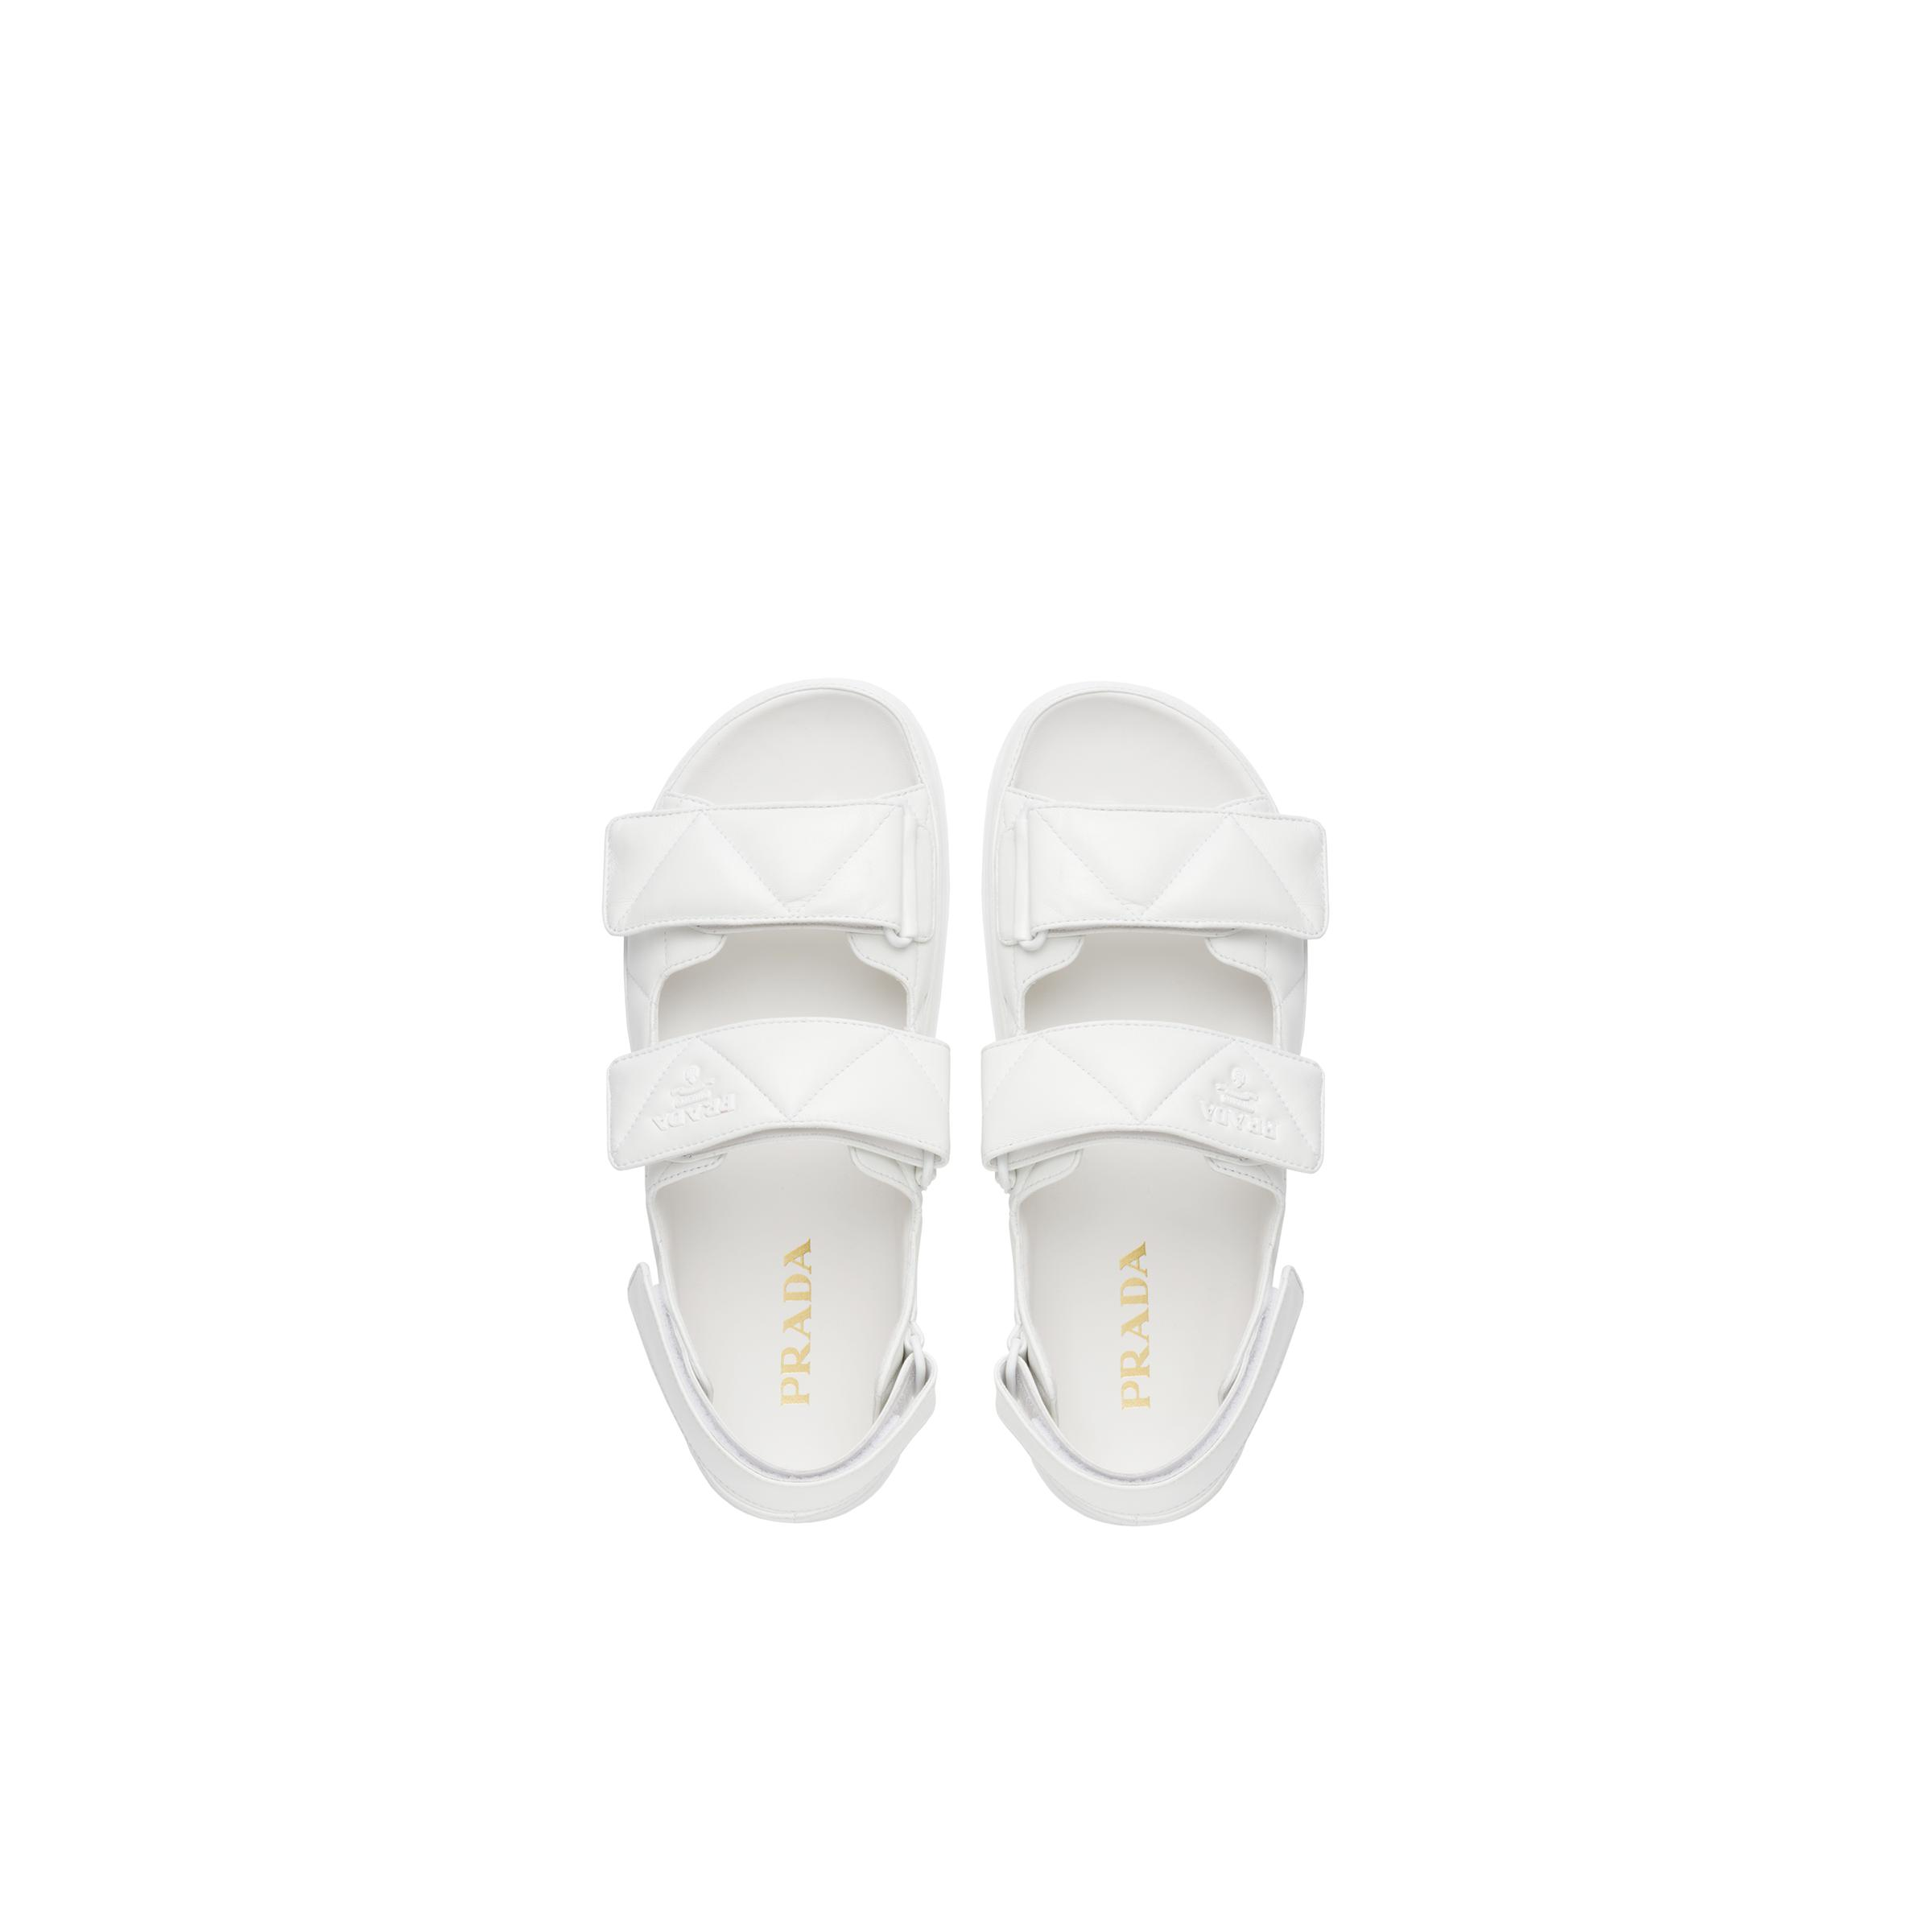 Padded Nappa Leather Sandals Women White 1